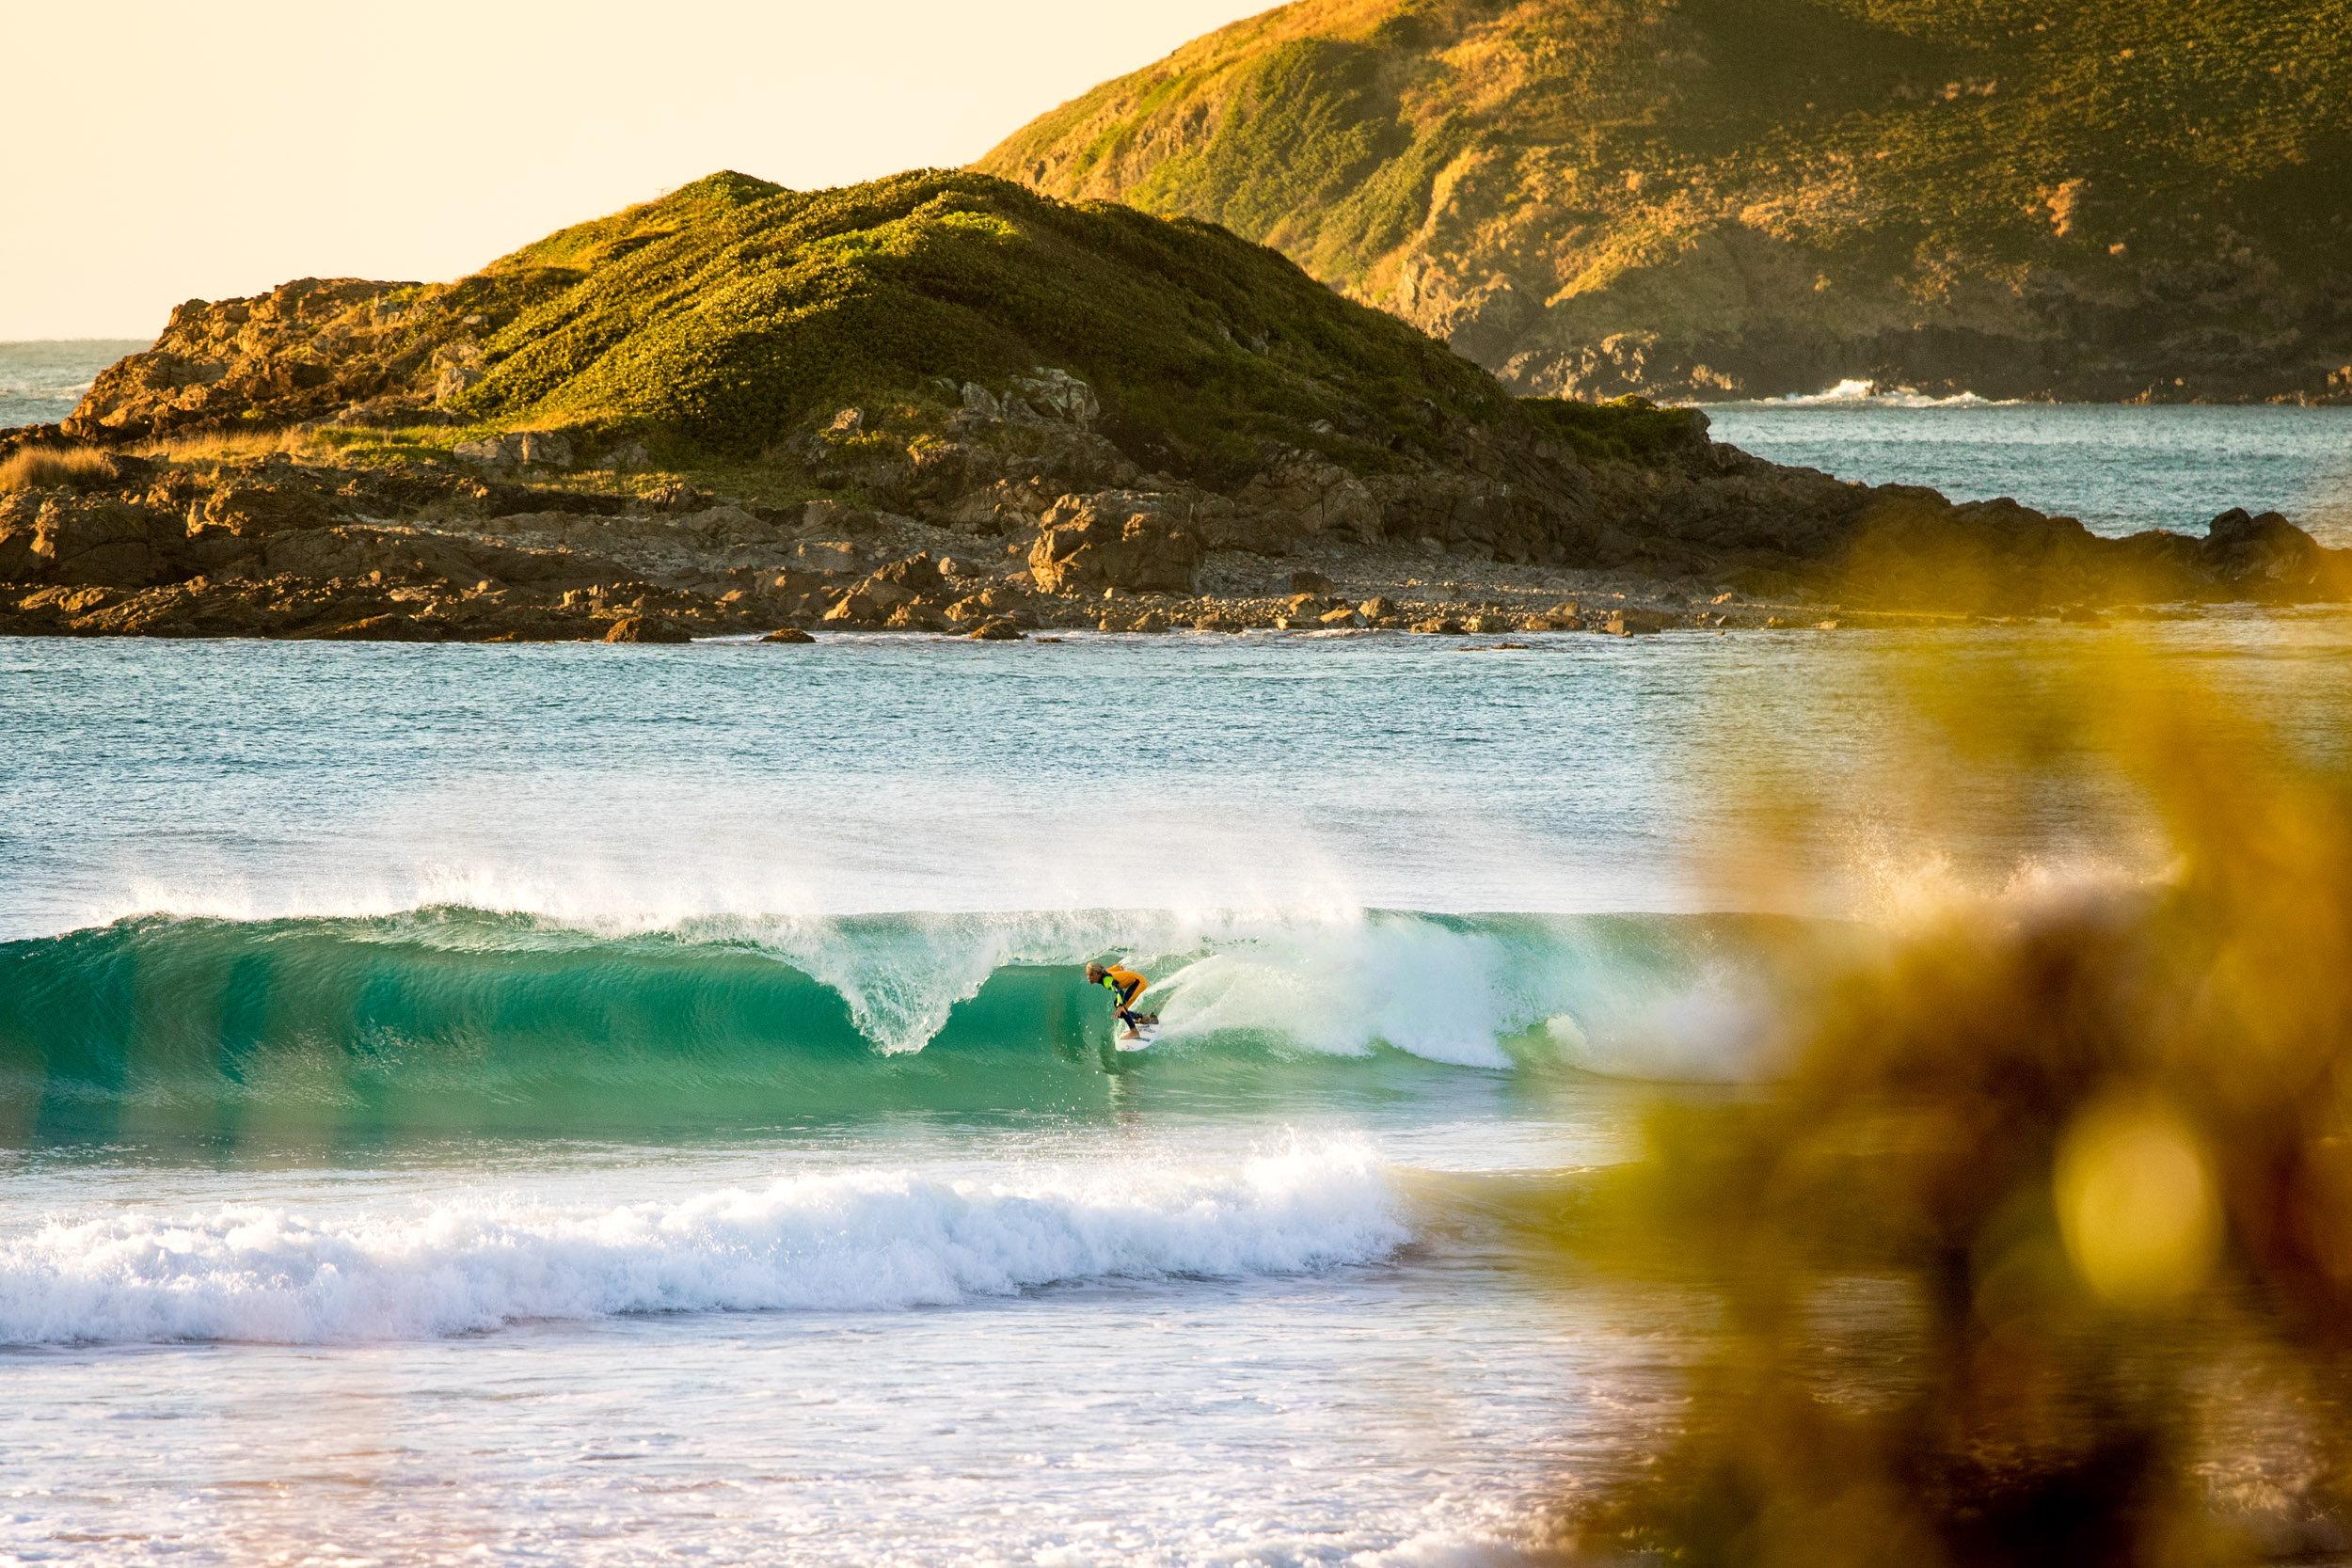 surfing-park-beach-coffs-harbour.jpg